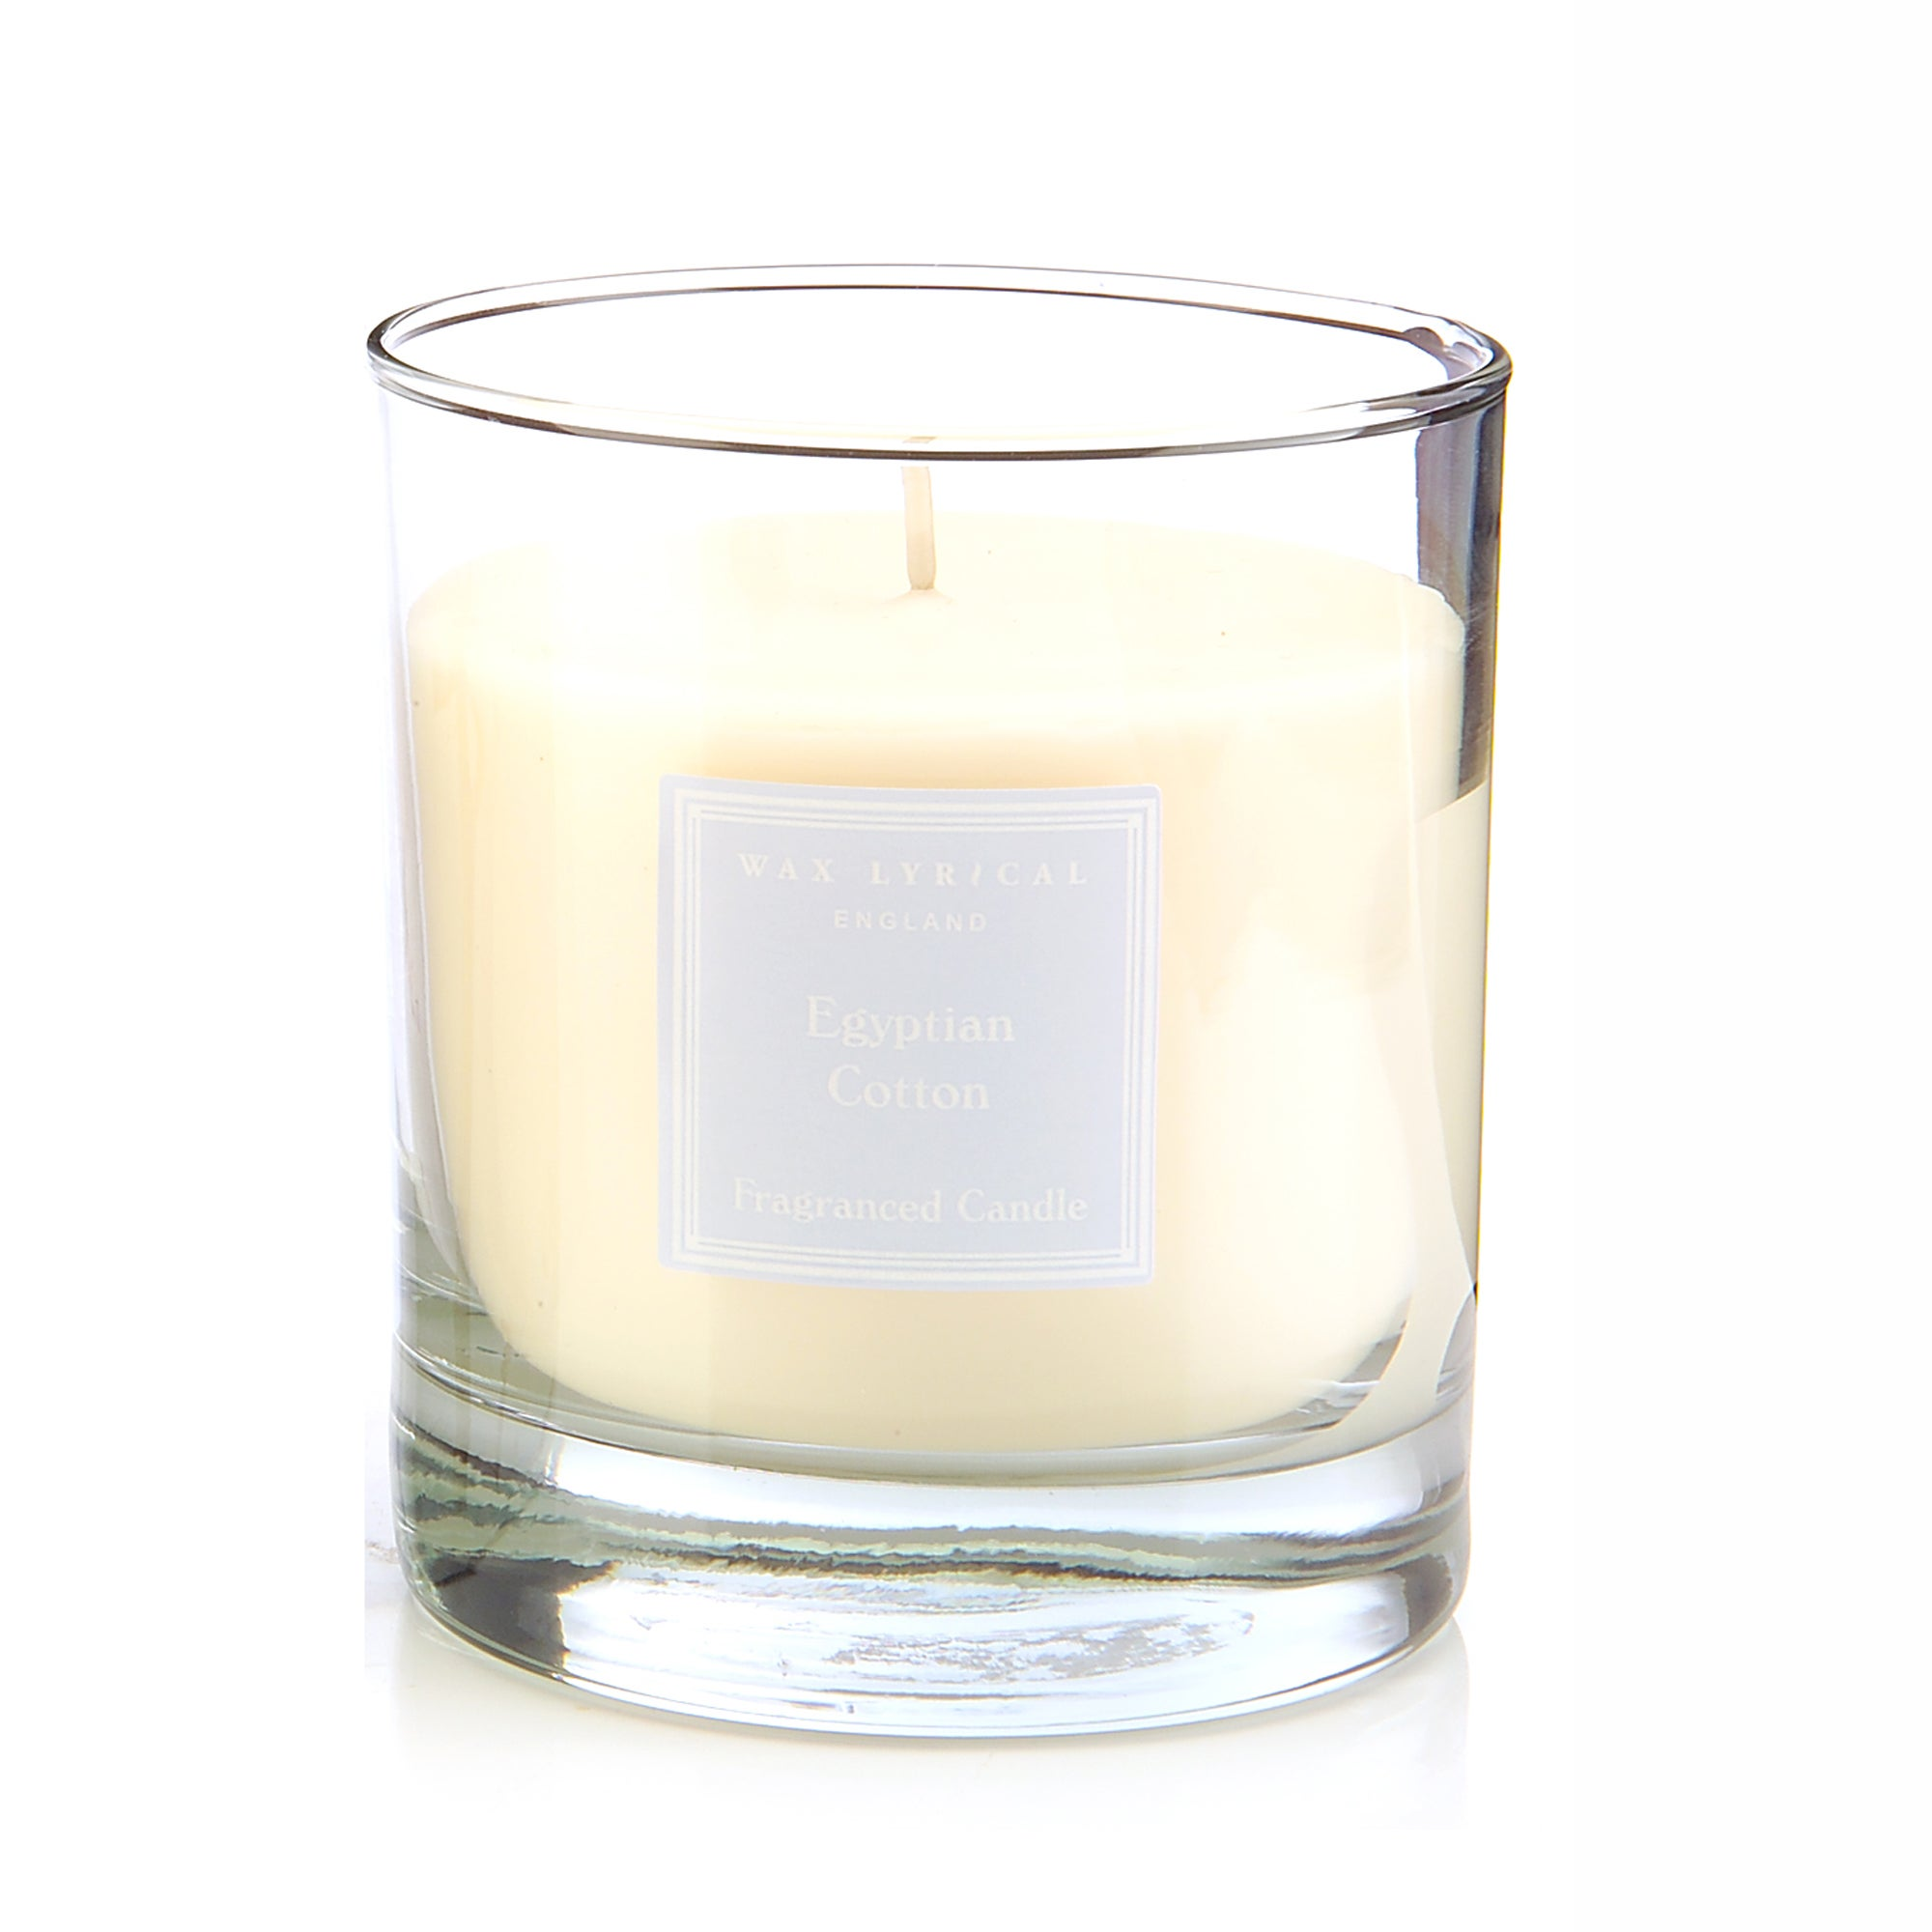 Wax Lyrical Egyptian Cotton Wax Filled Glass Candle